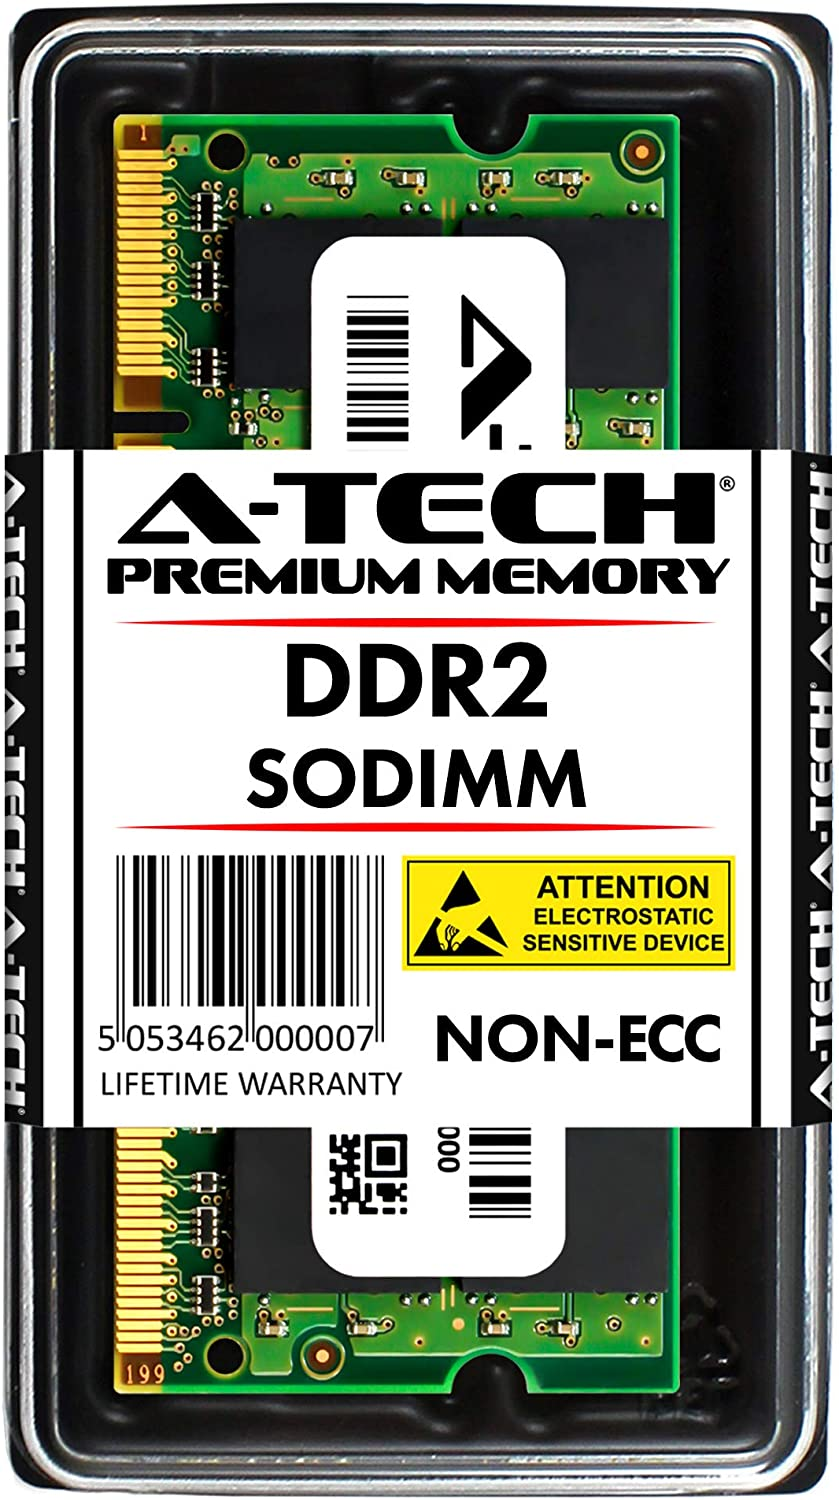 A-Tech 4GB Stick for Dell Studio Notebook Series 1537 1555 1737 - DDR2 800MHz PC2-6400 SO-DIMM RAM Memory